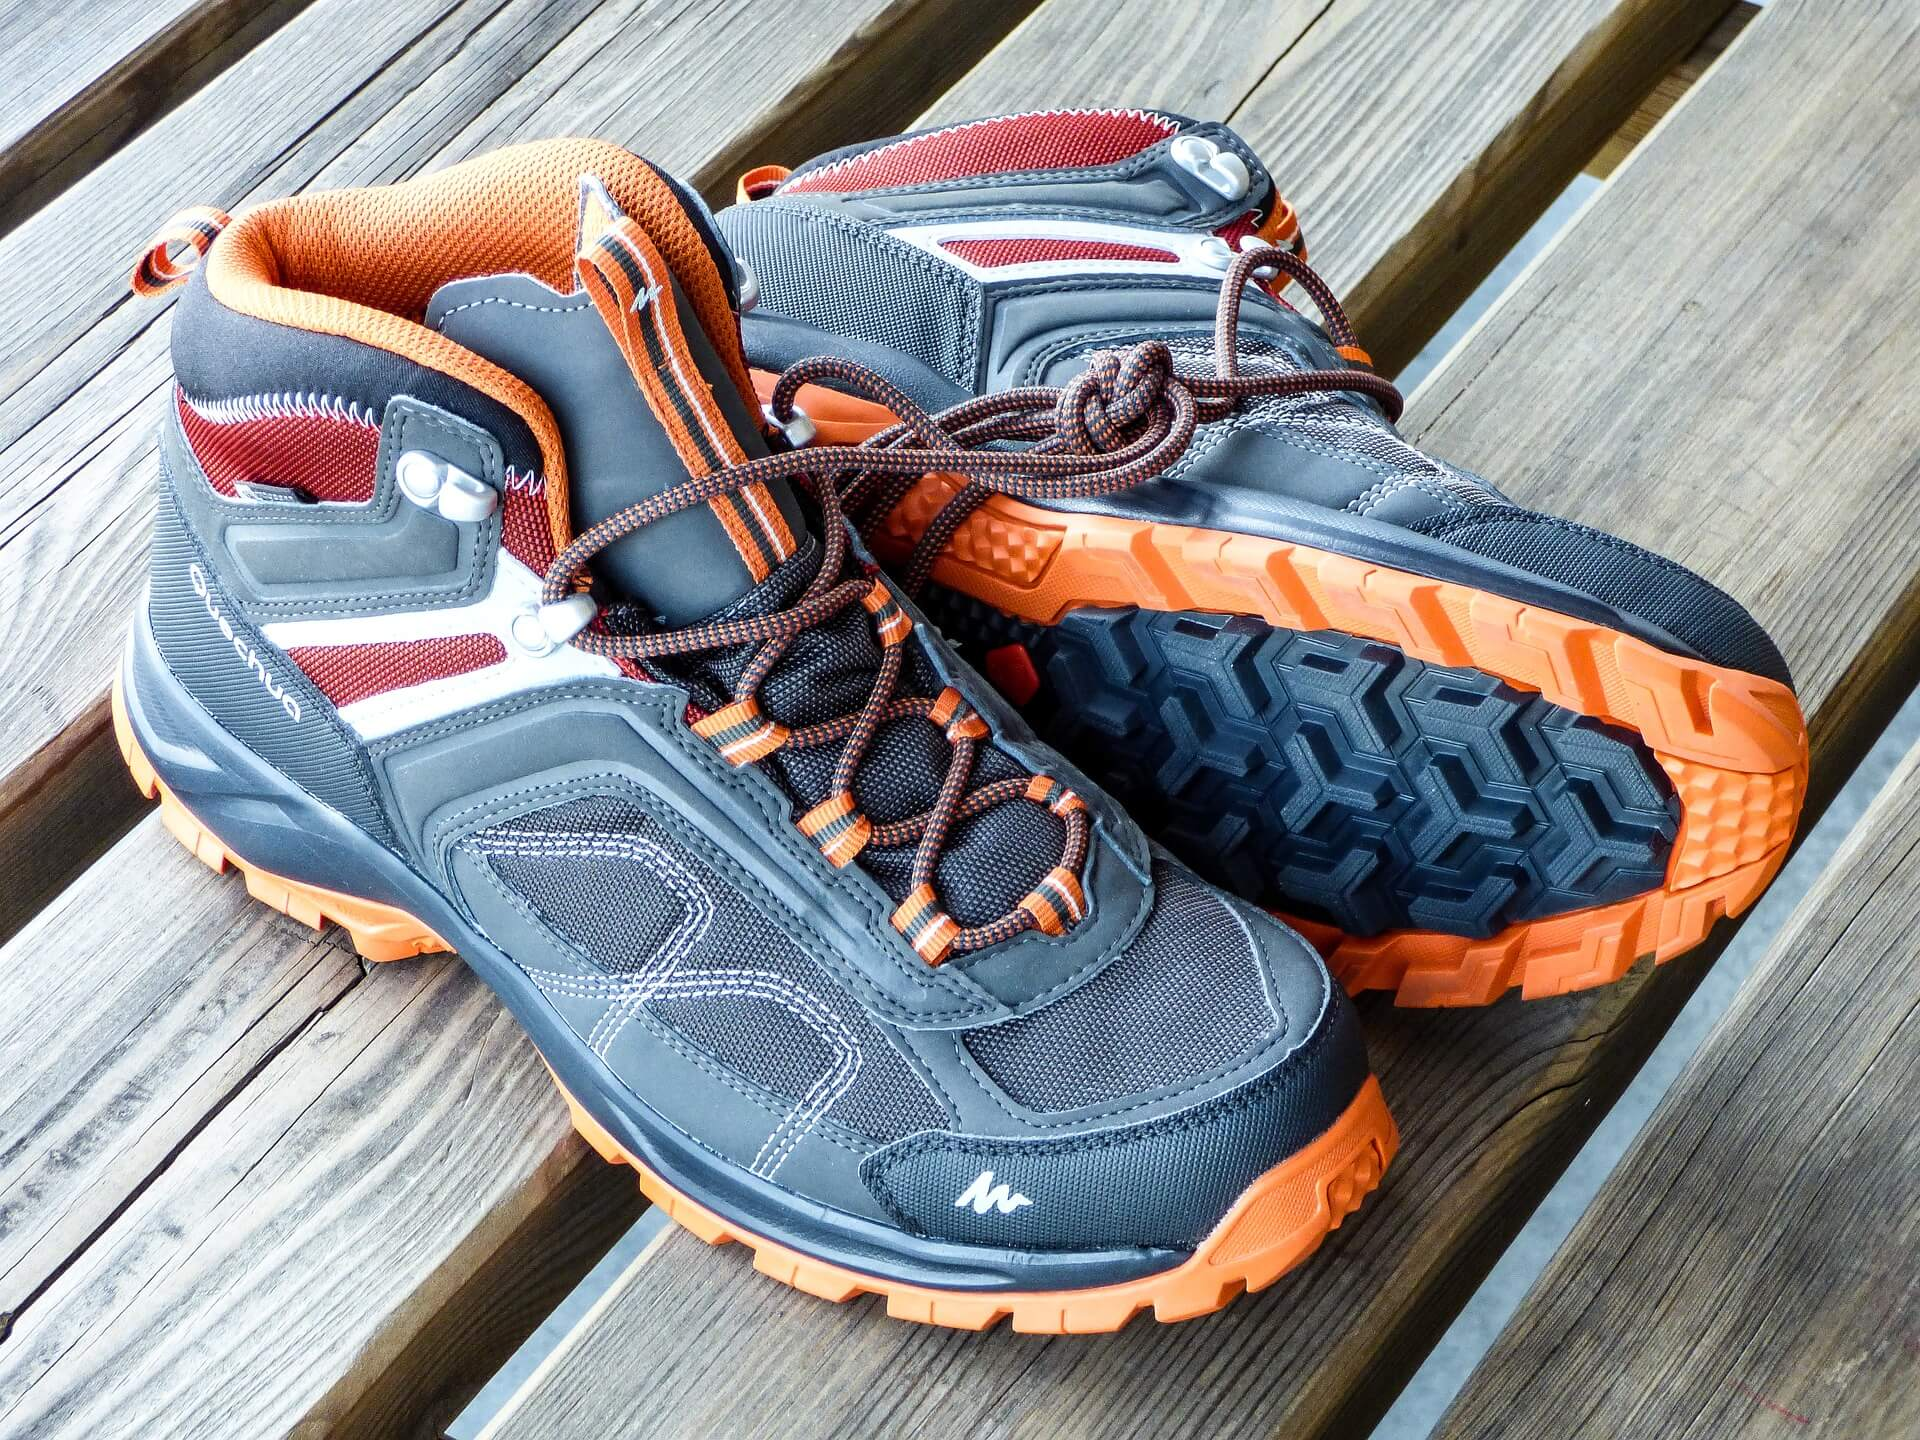 Add waterproof boots with gore-tex to your waterproof hiking gear